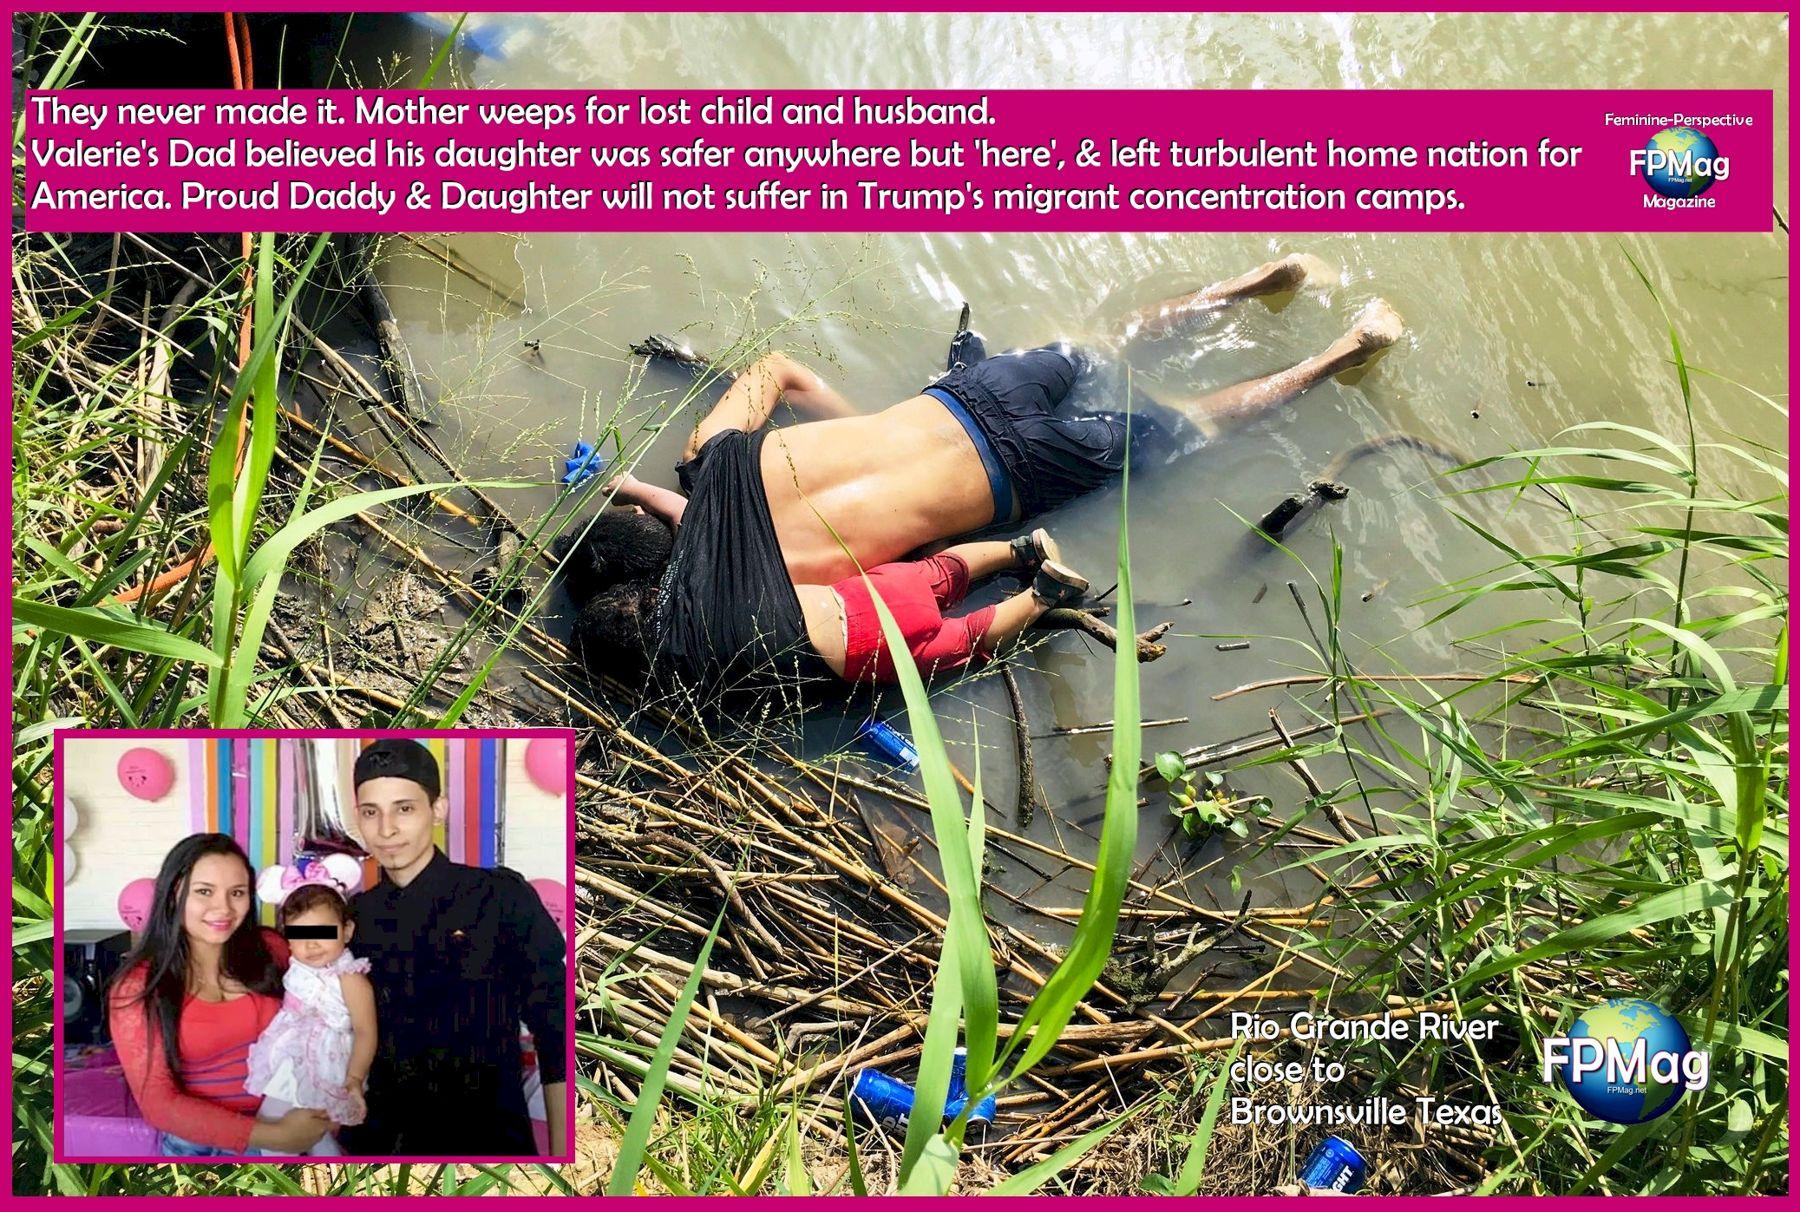 They never made it. Mother weeps for lost child and husband. Valerie's Dad believed his daughter was safer anywhere but 'here', & left turbulent home nation for America. Proud Daddy & Daughter will not suffer in Trump's migrant concentration camps. Feminine-Perspective Magazine